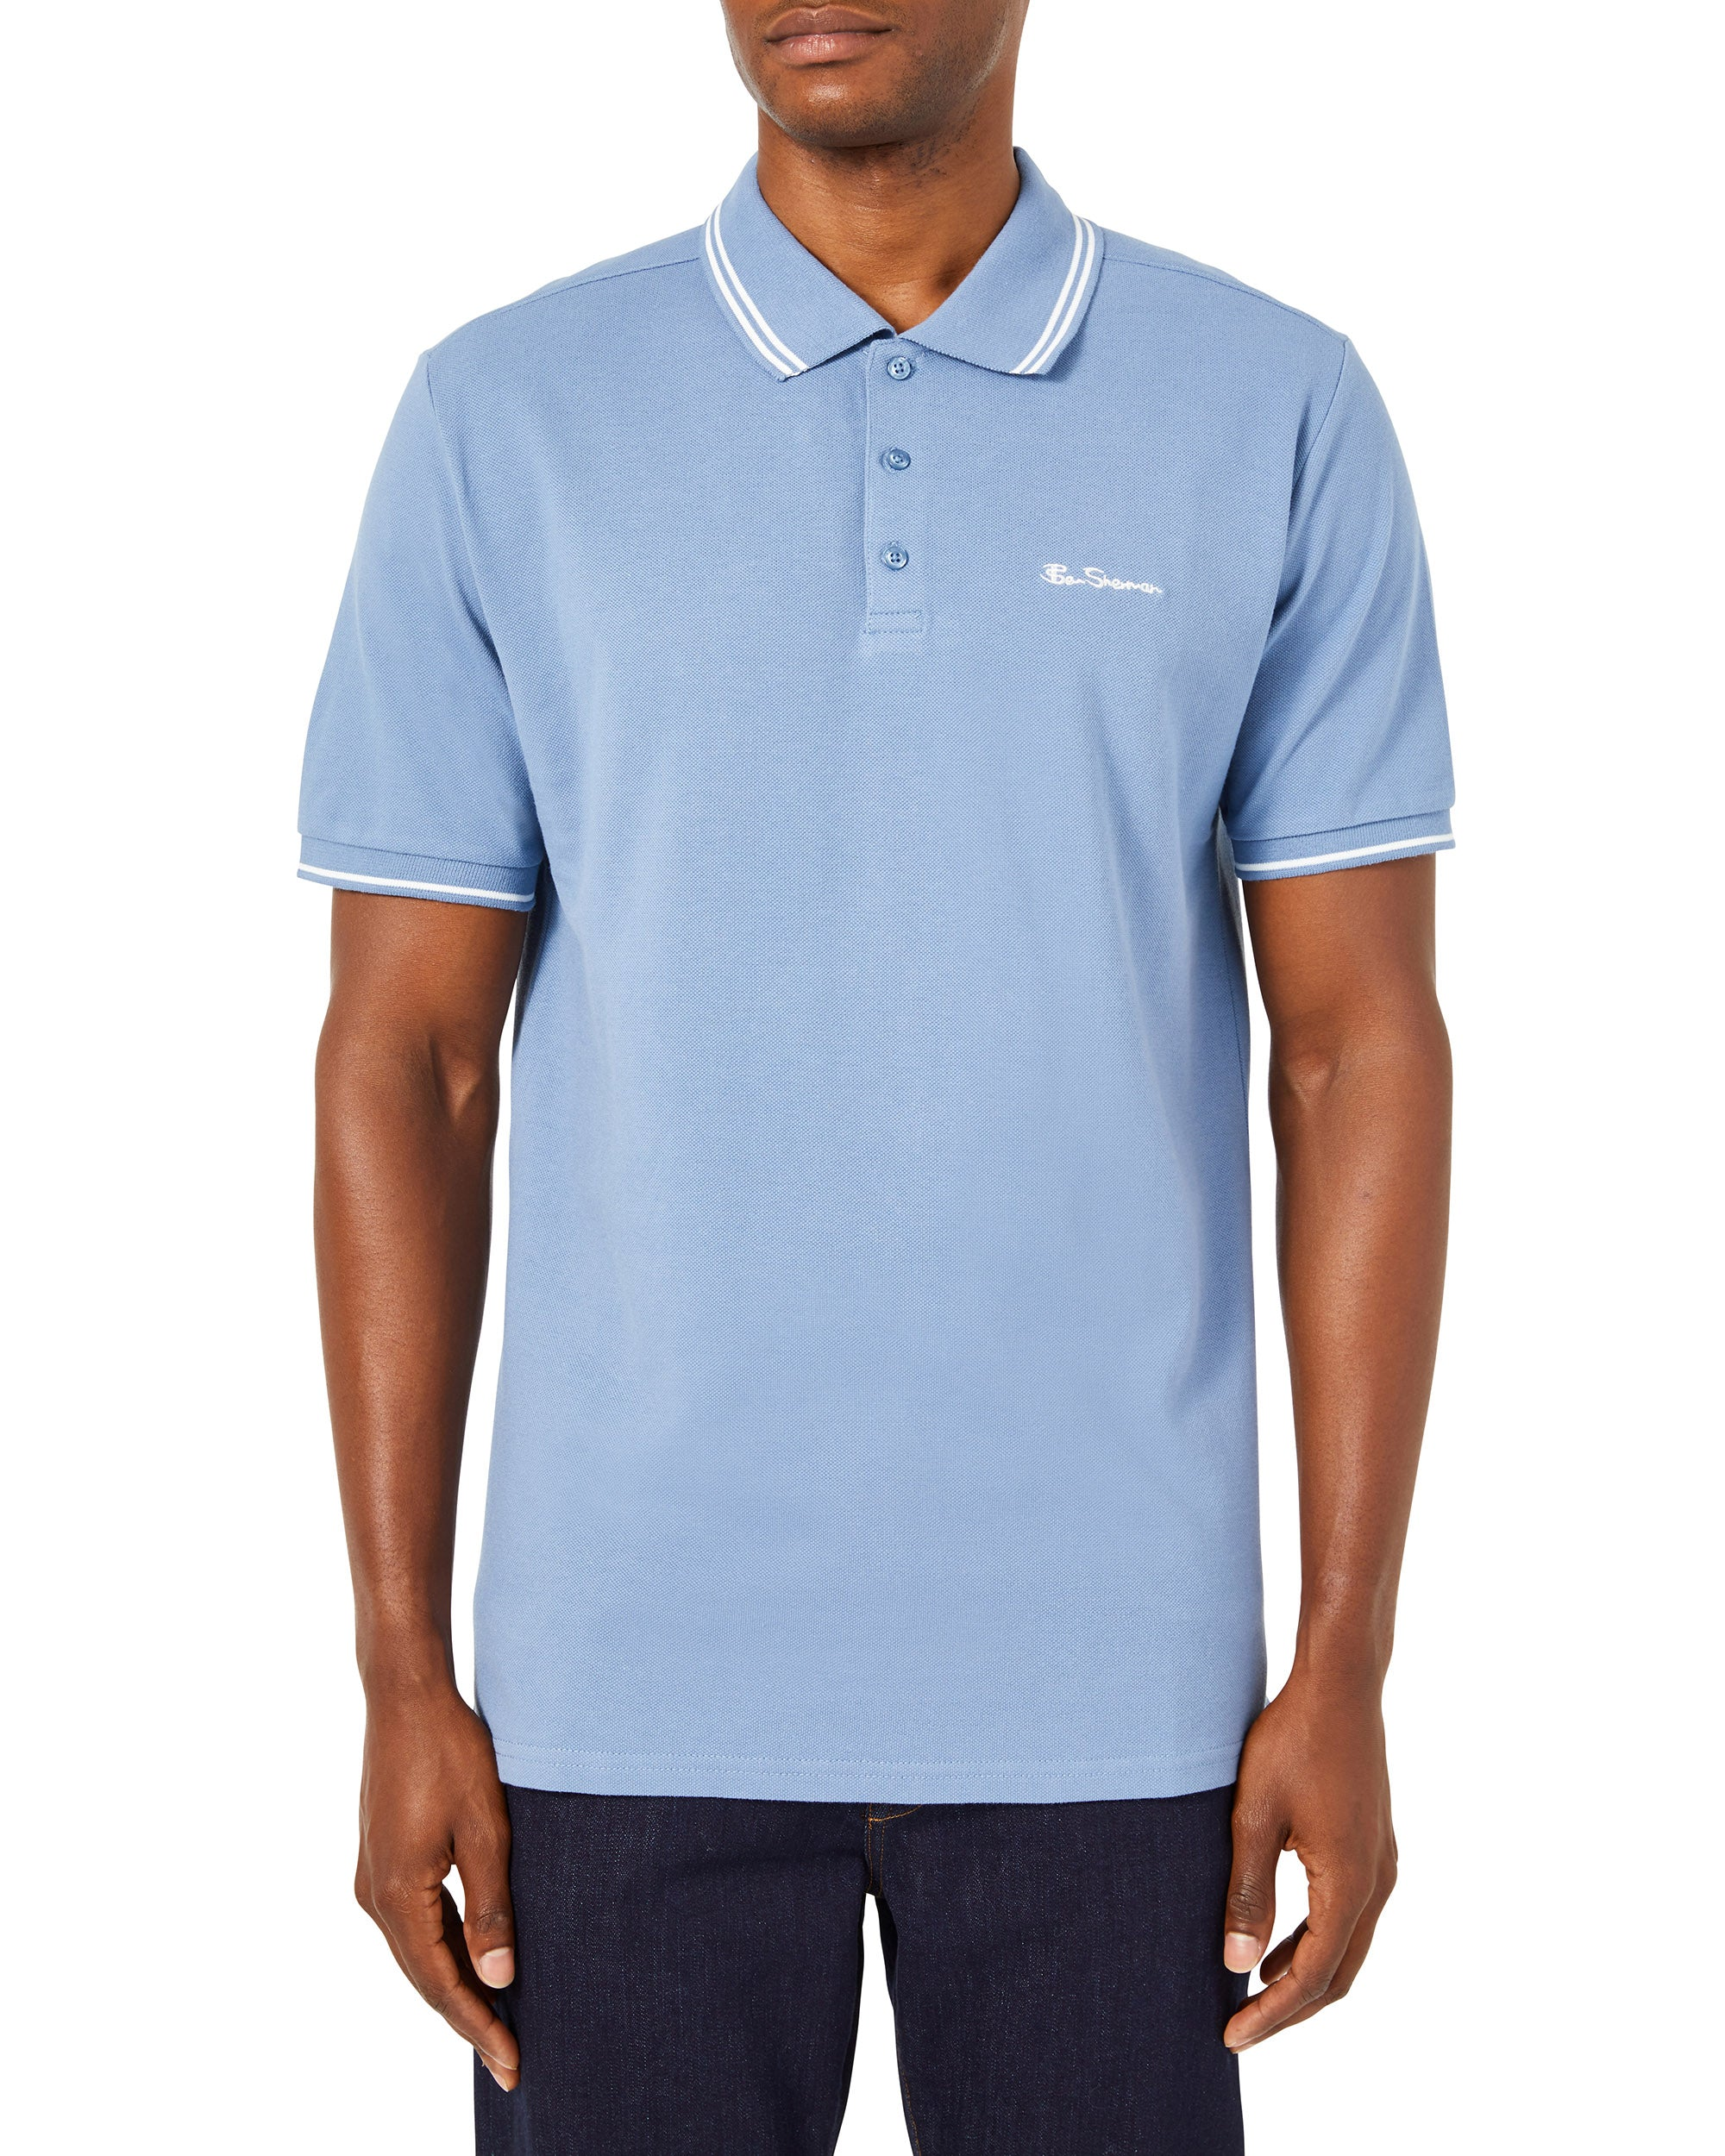 Script Tipped Pique Polo Shirt - Light Blue/White